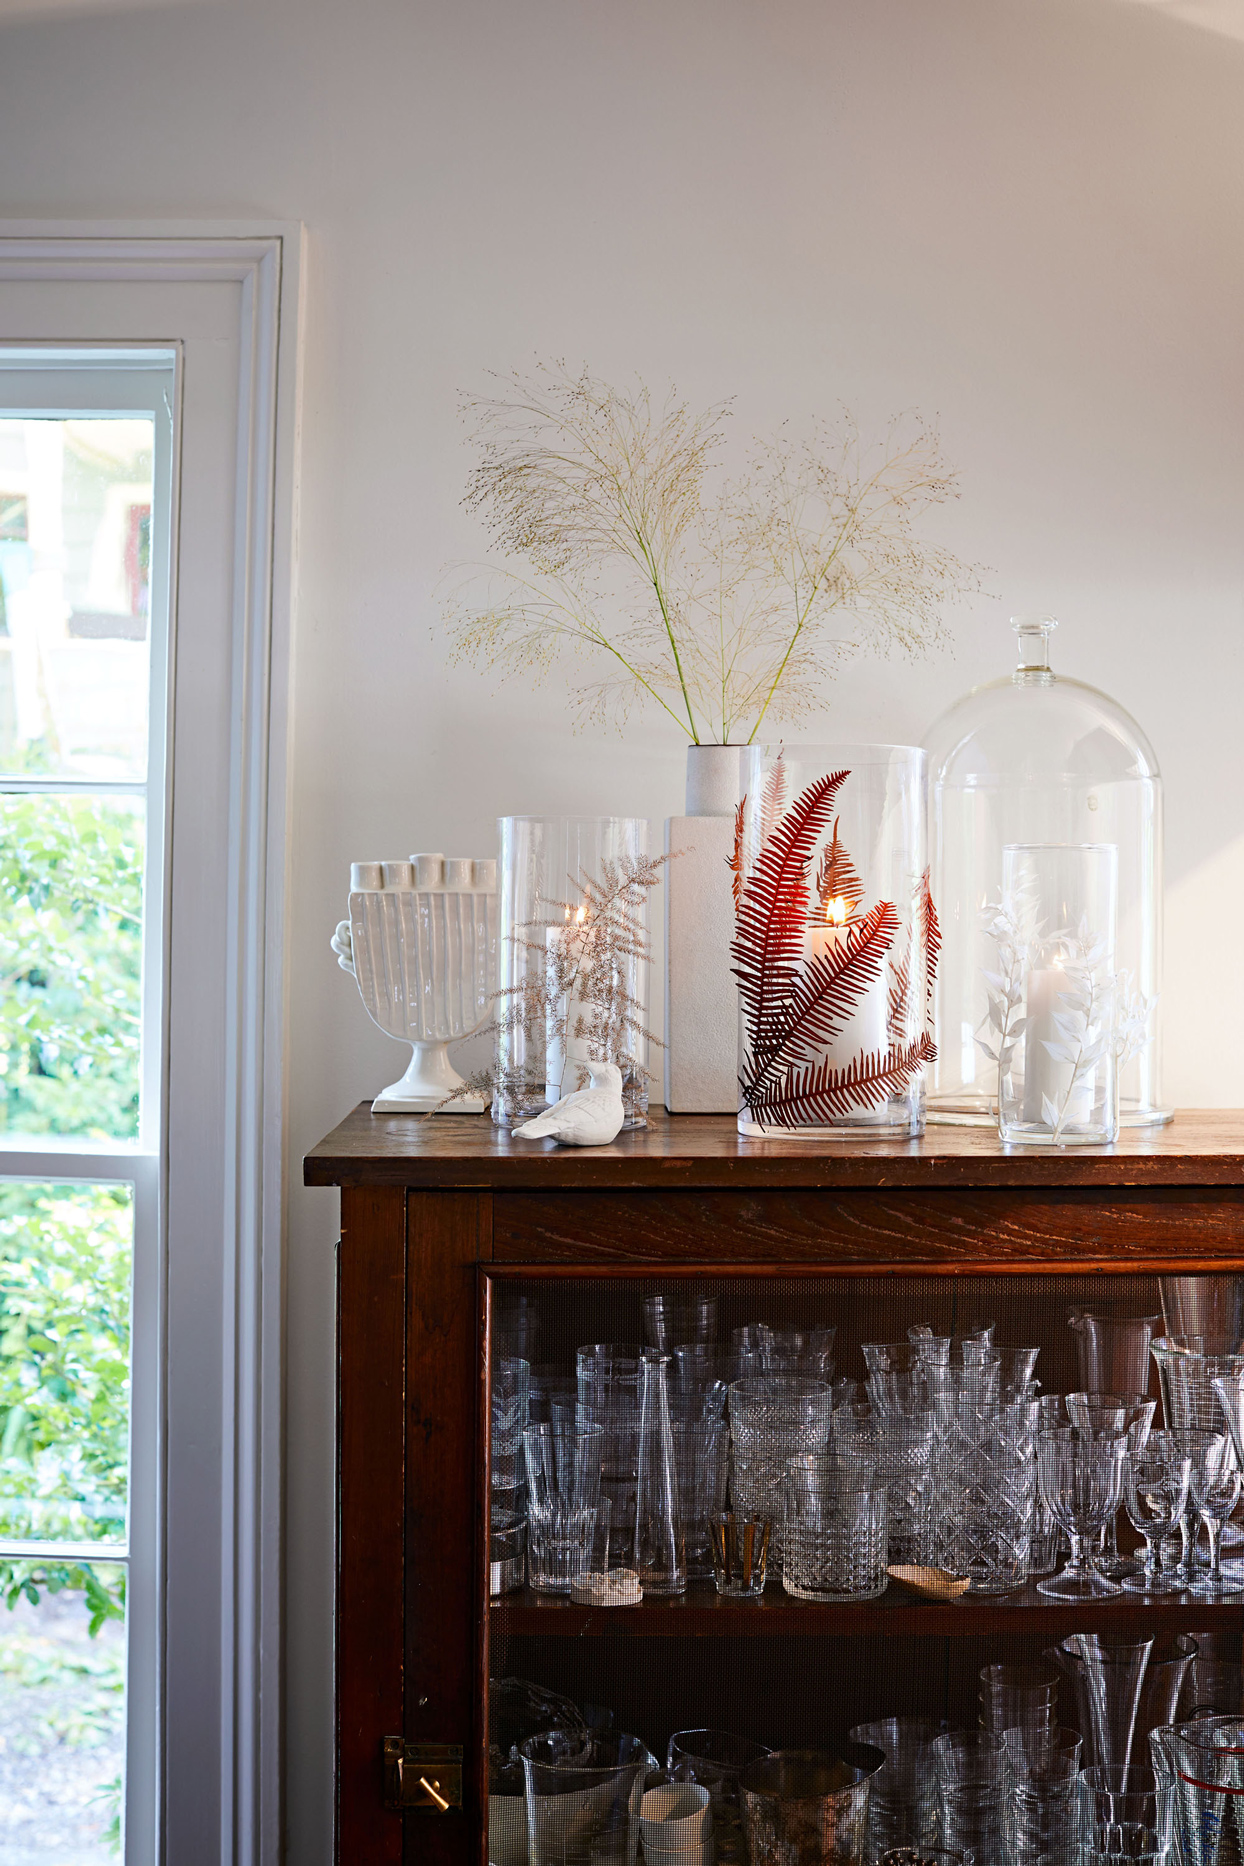 glass candle containers decorated with dried flowers